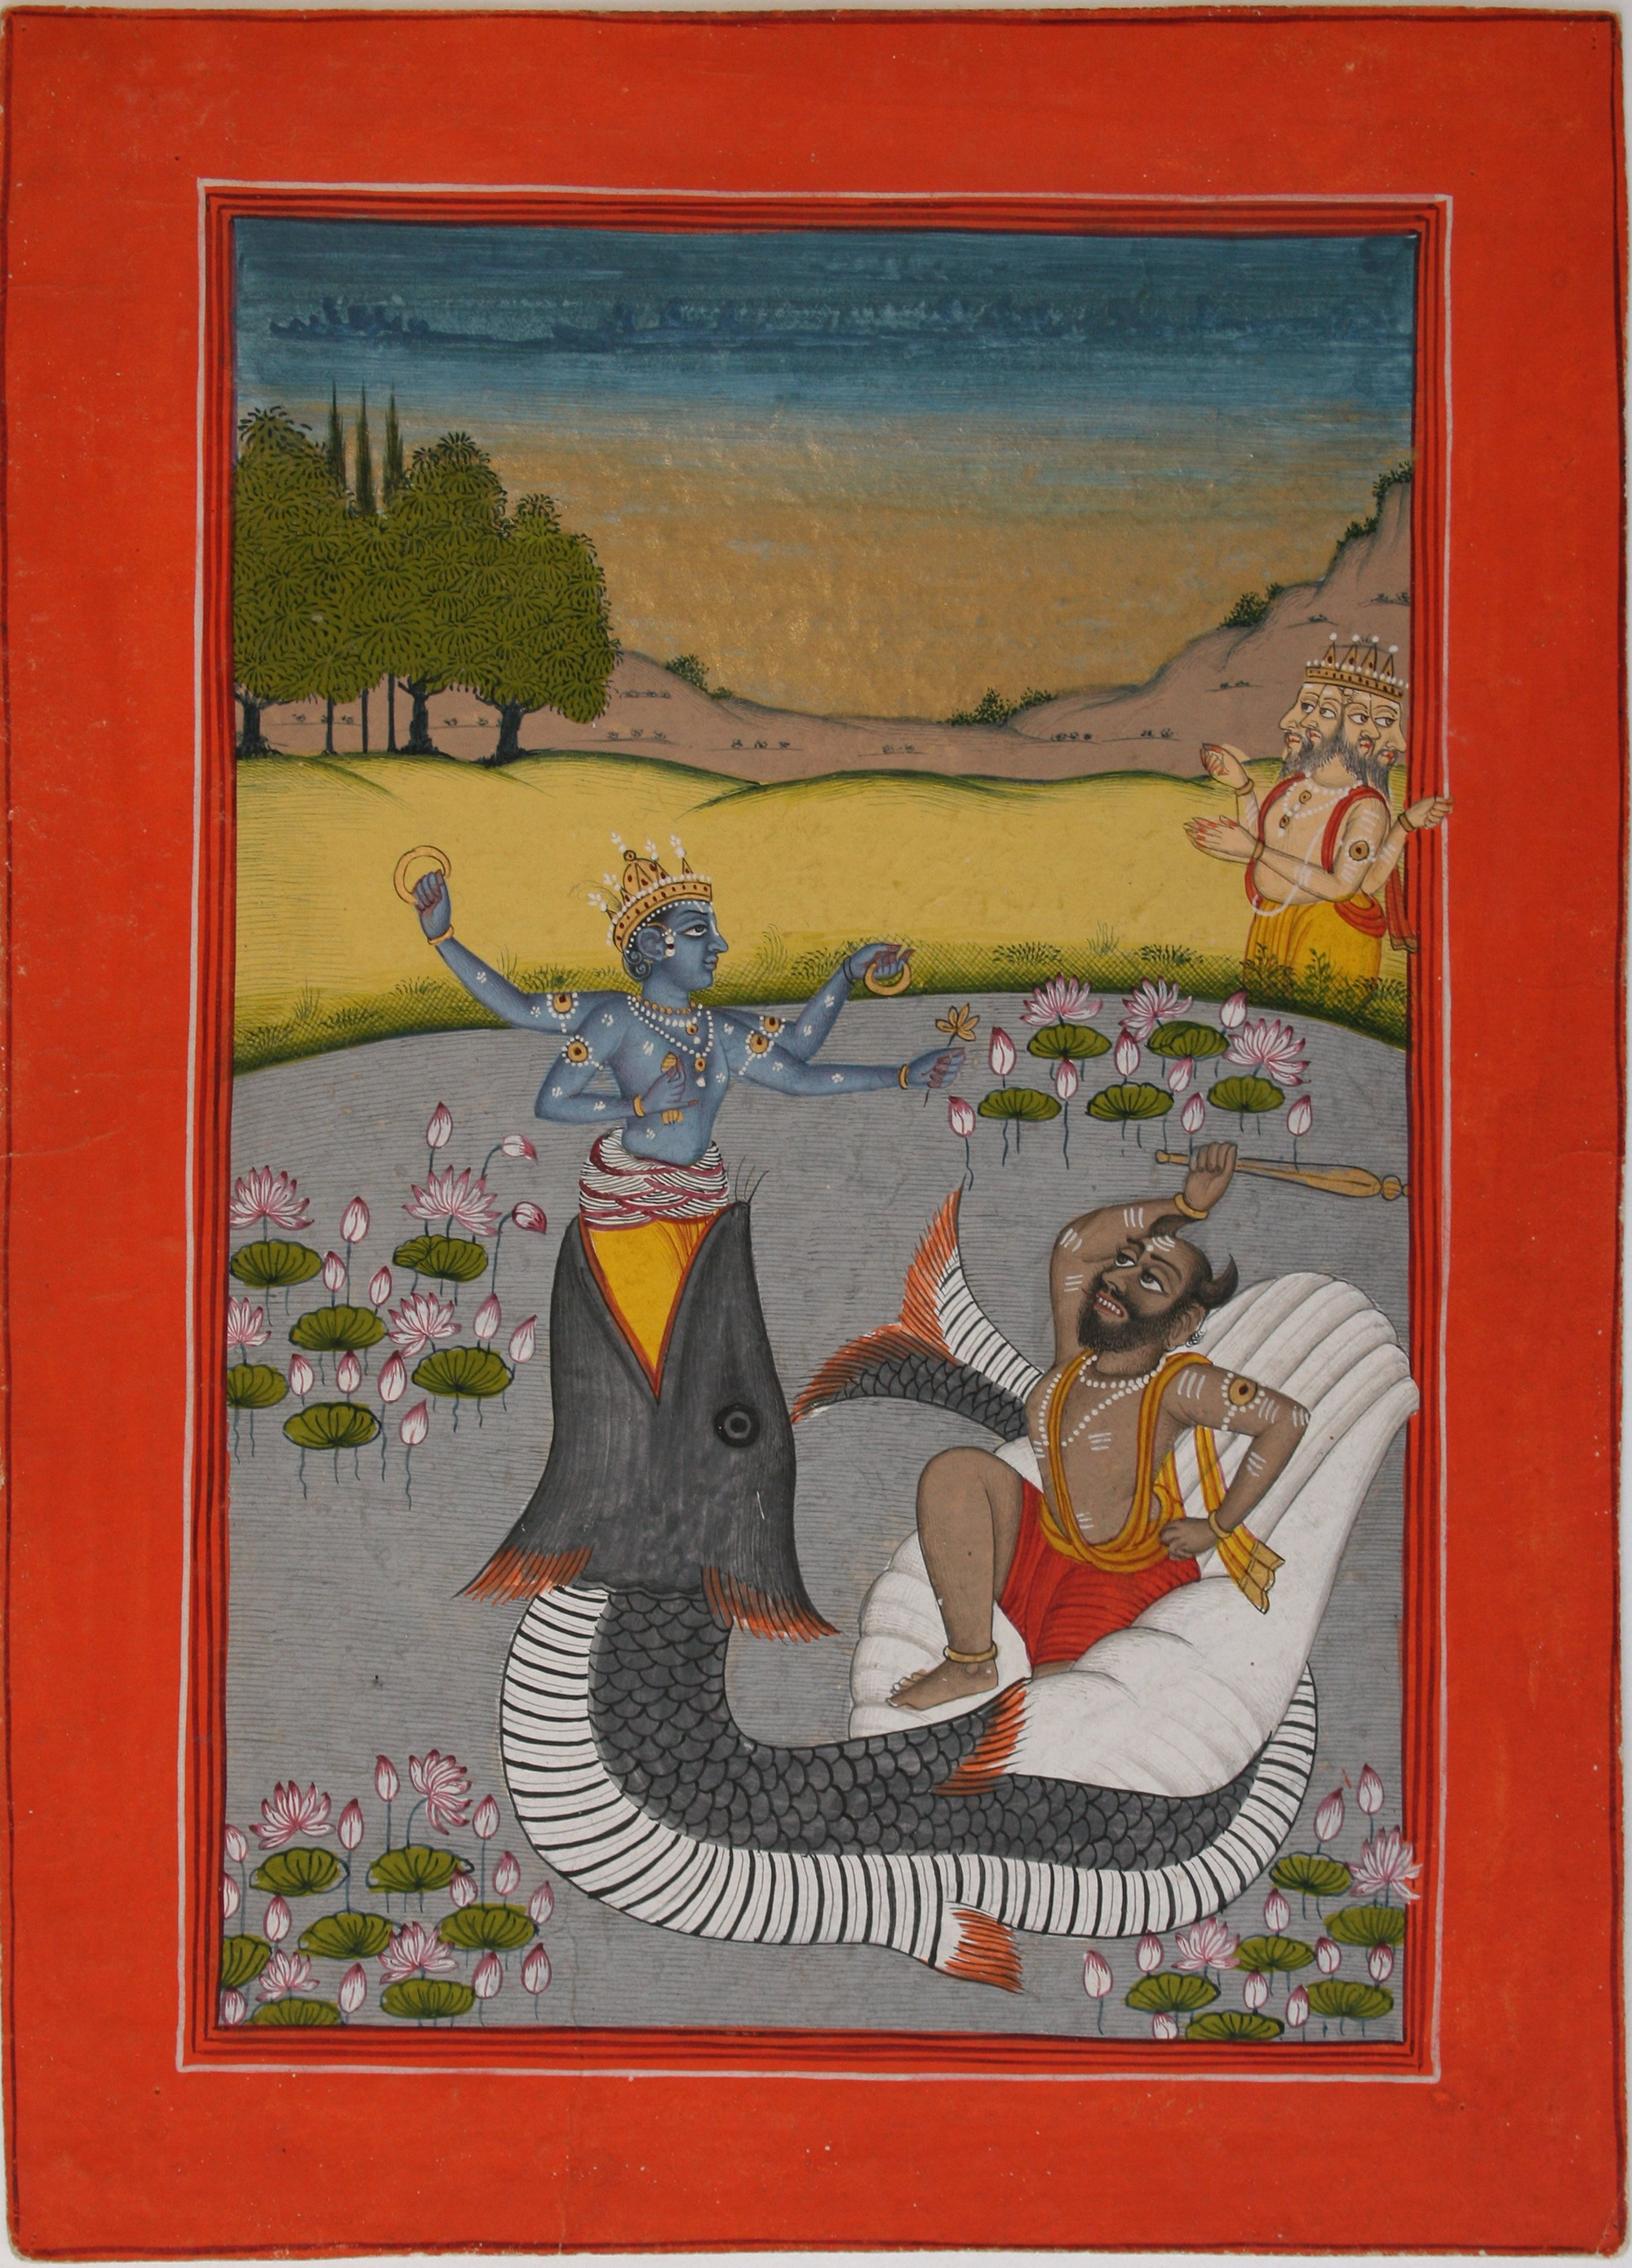 Matsya Avatara of Vishnu (Folio from a Dasavatara series) - Datia, circa 1800